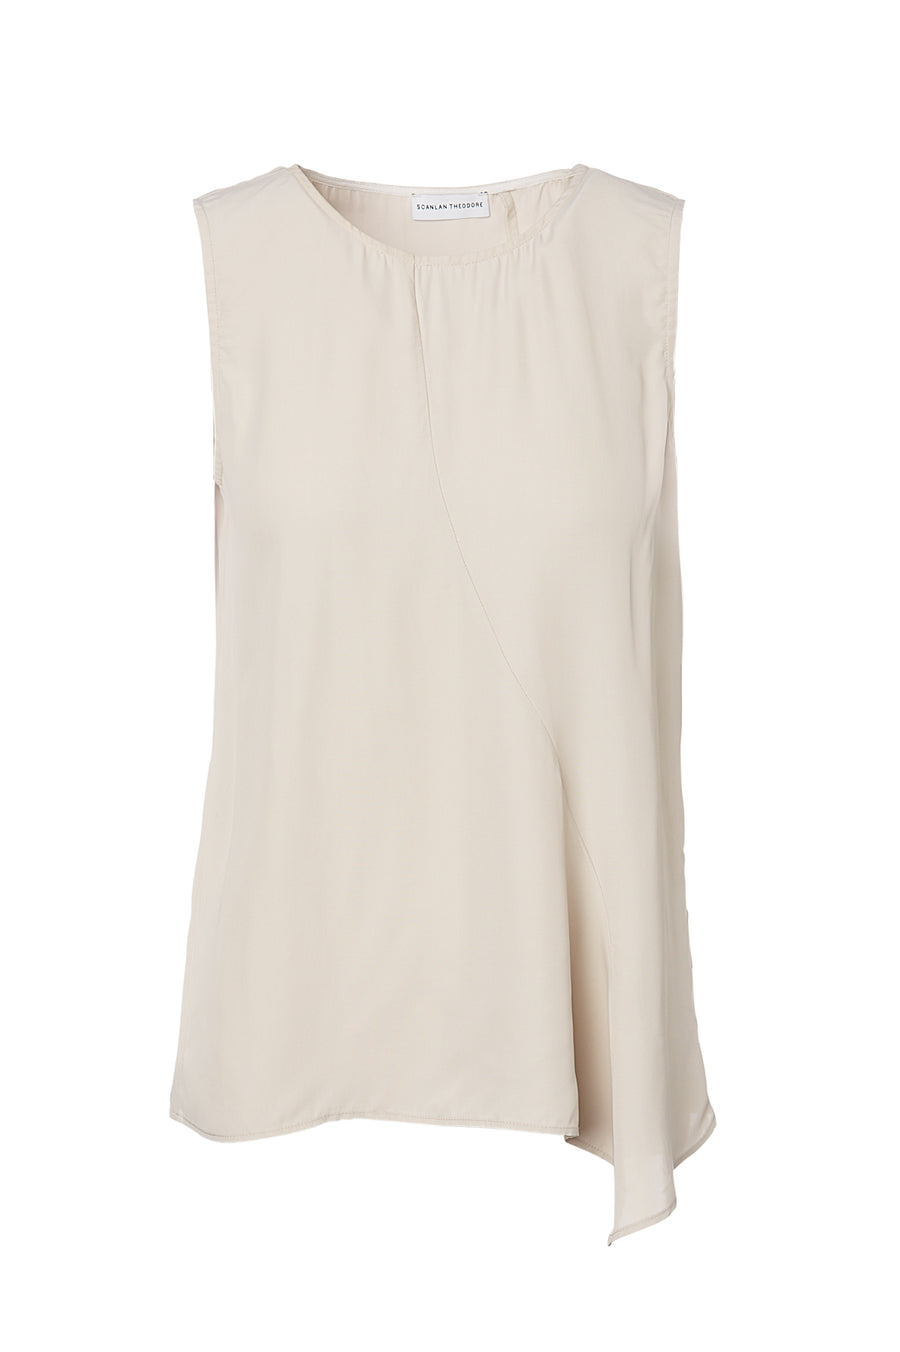 POWDERED VISCOSE TOP, front drape, short sleeve, crew neck, WHITE Frappe